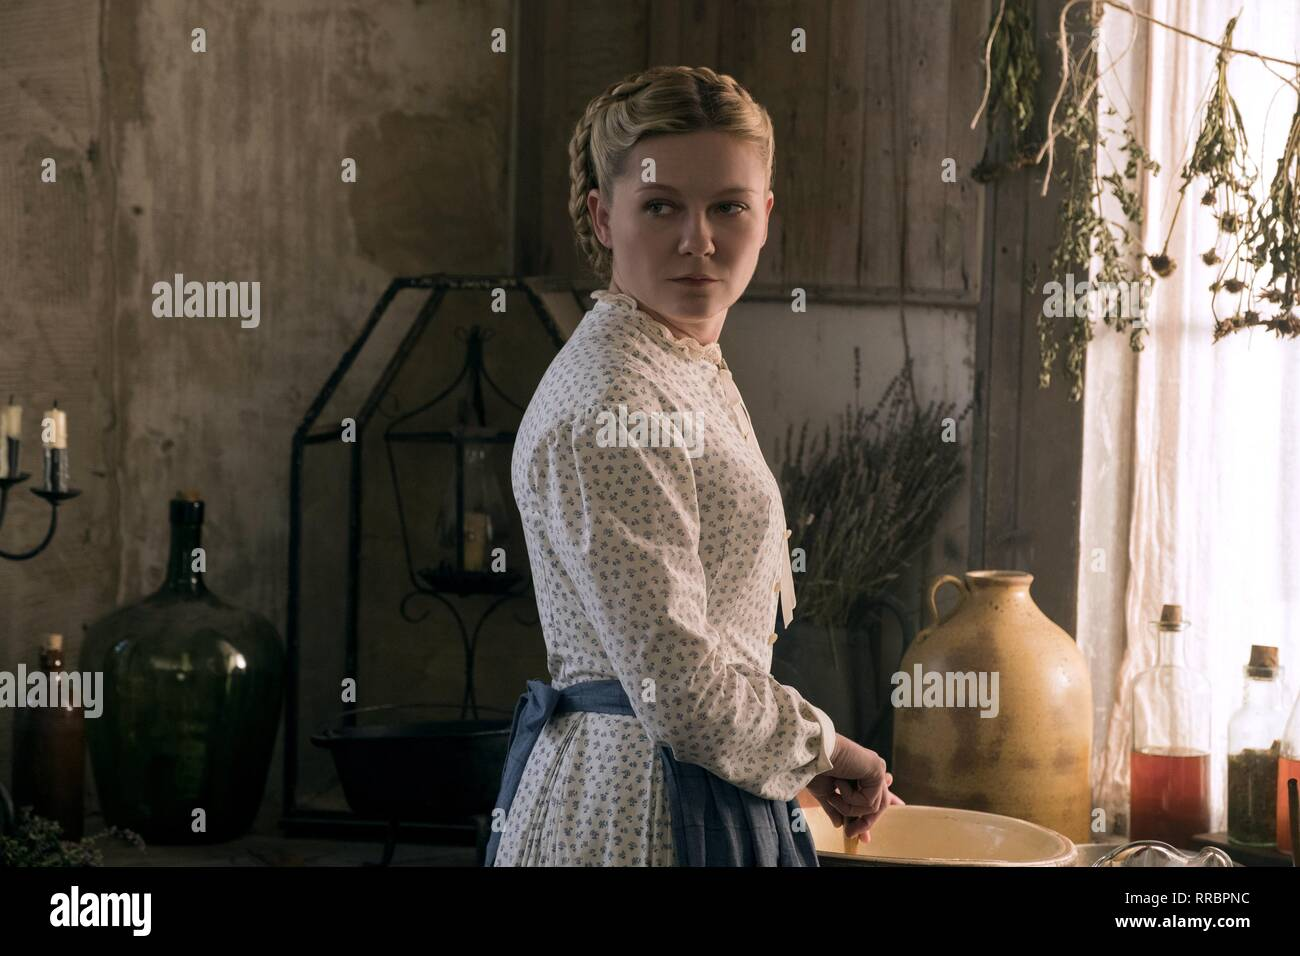 THE BEGUILED, KIRSTEN DUNST, 2017 - Stock Image